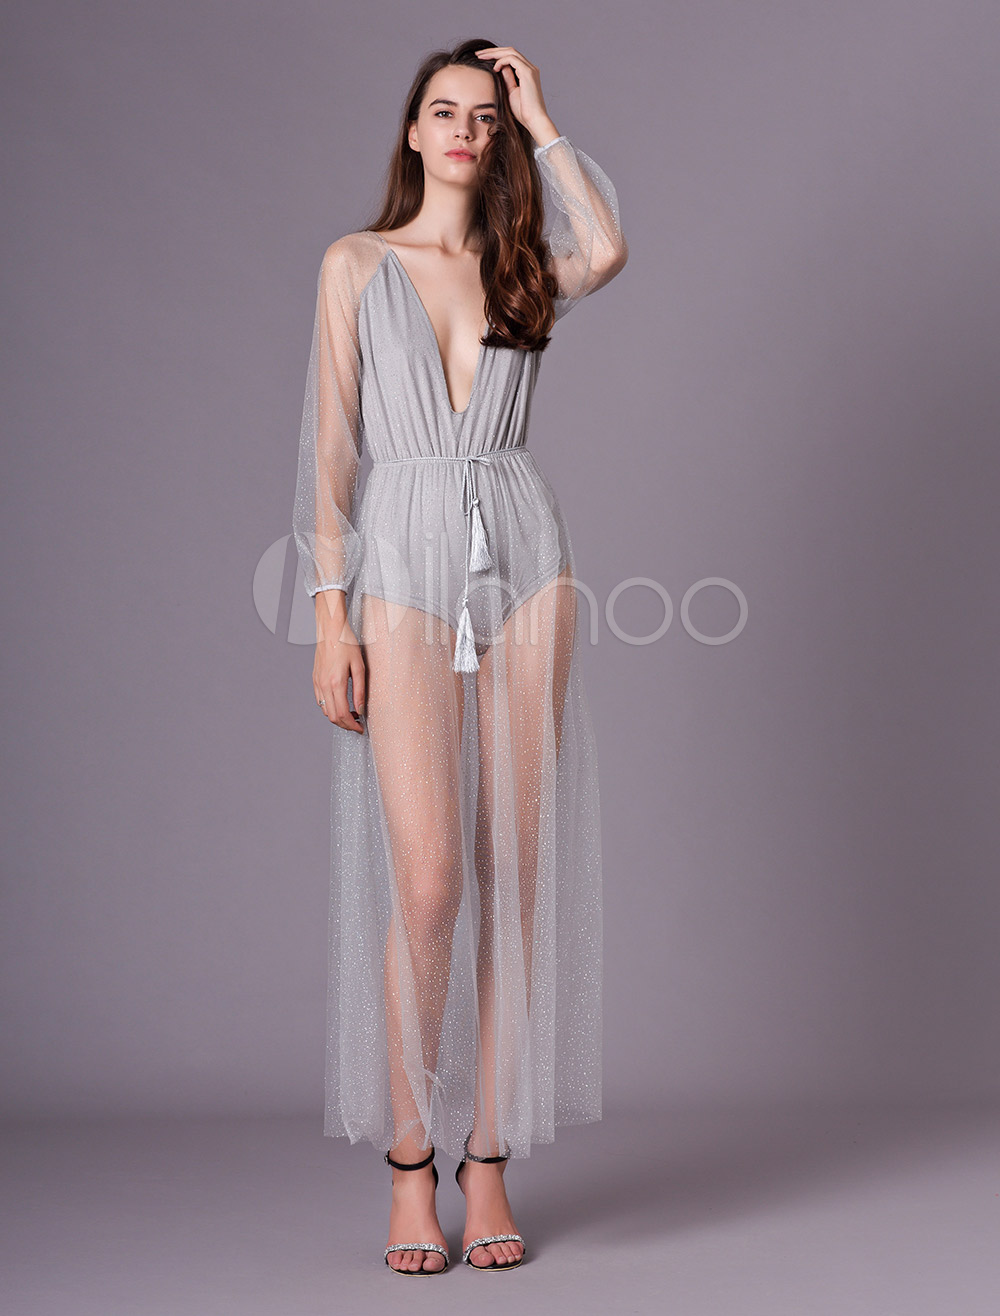 197611927a ... Glitter Maxi Dress Silver Sequin Party Dress Tulle Sheer Plunging  Backless Long Sleeve Women Sexy Dress ...